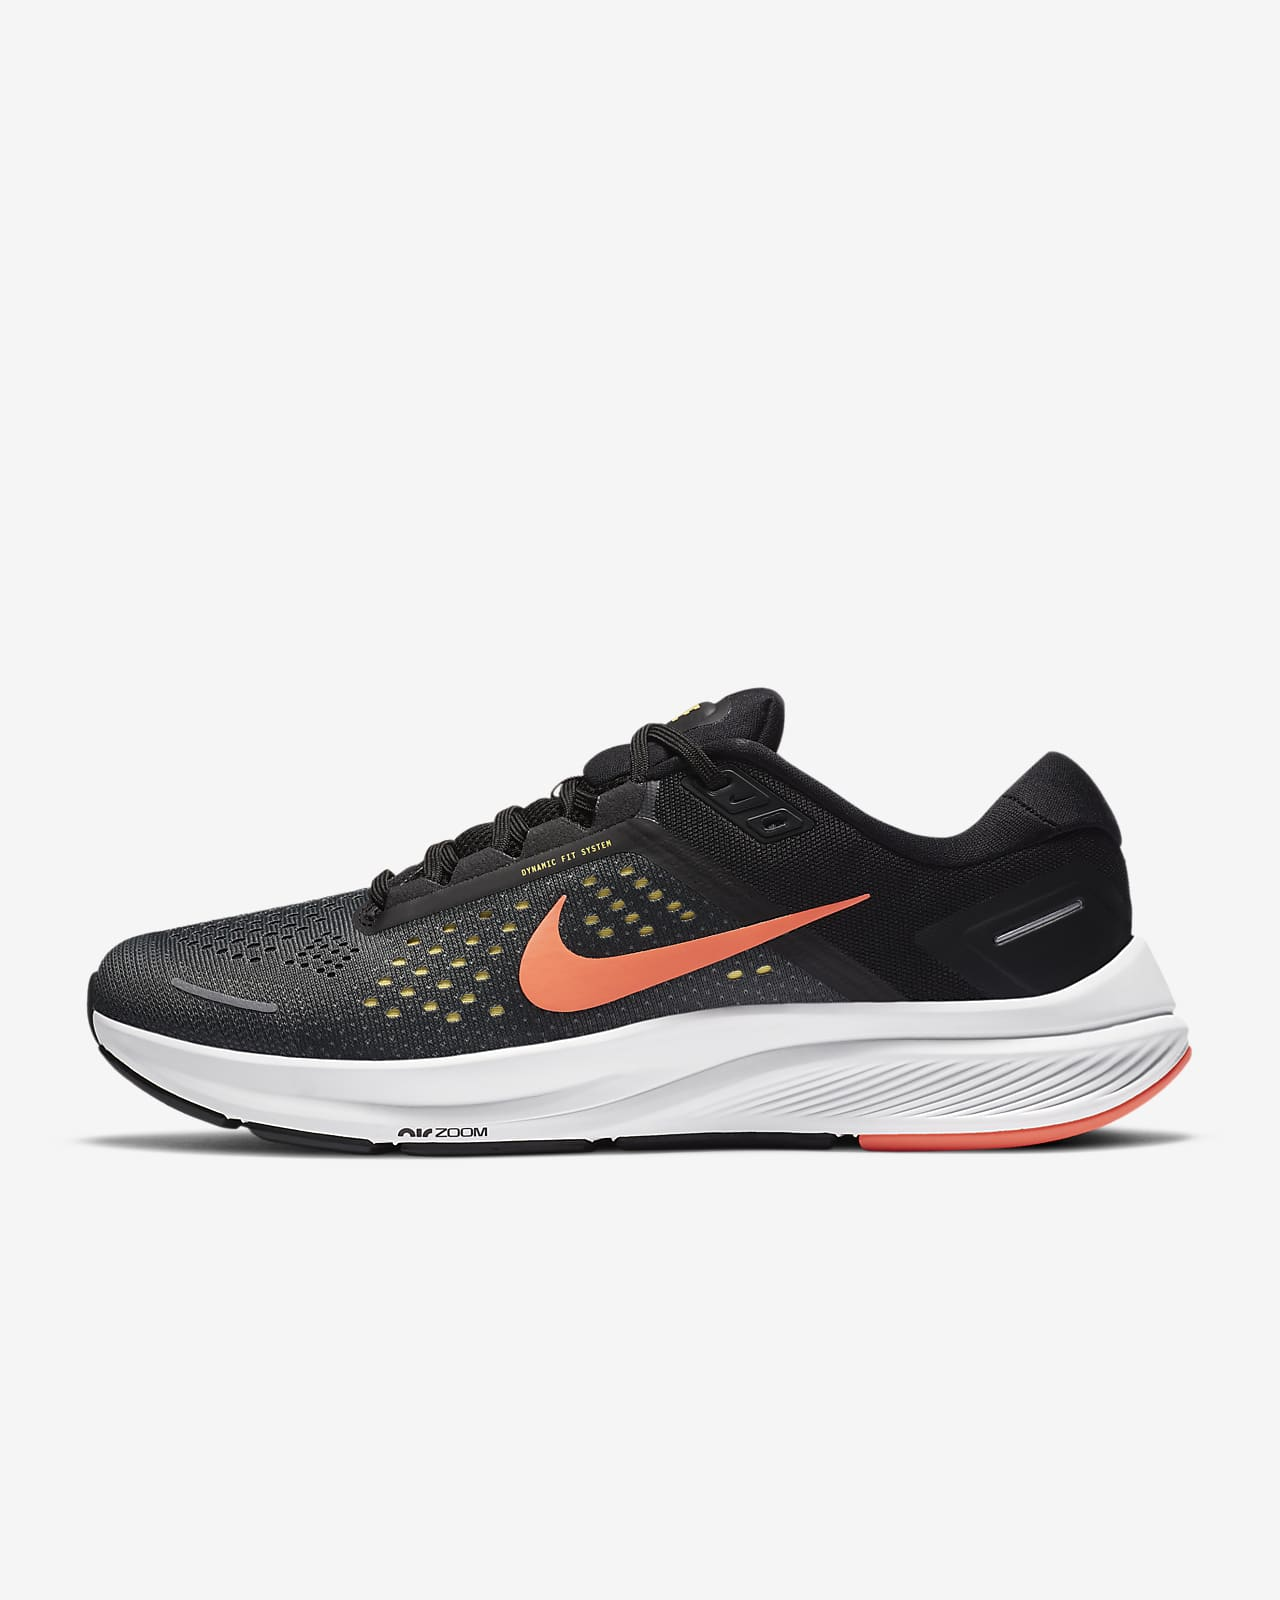 Chaussure de running Nike Air Zoom Structure 23 pour Homme